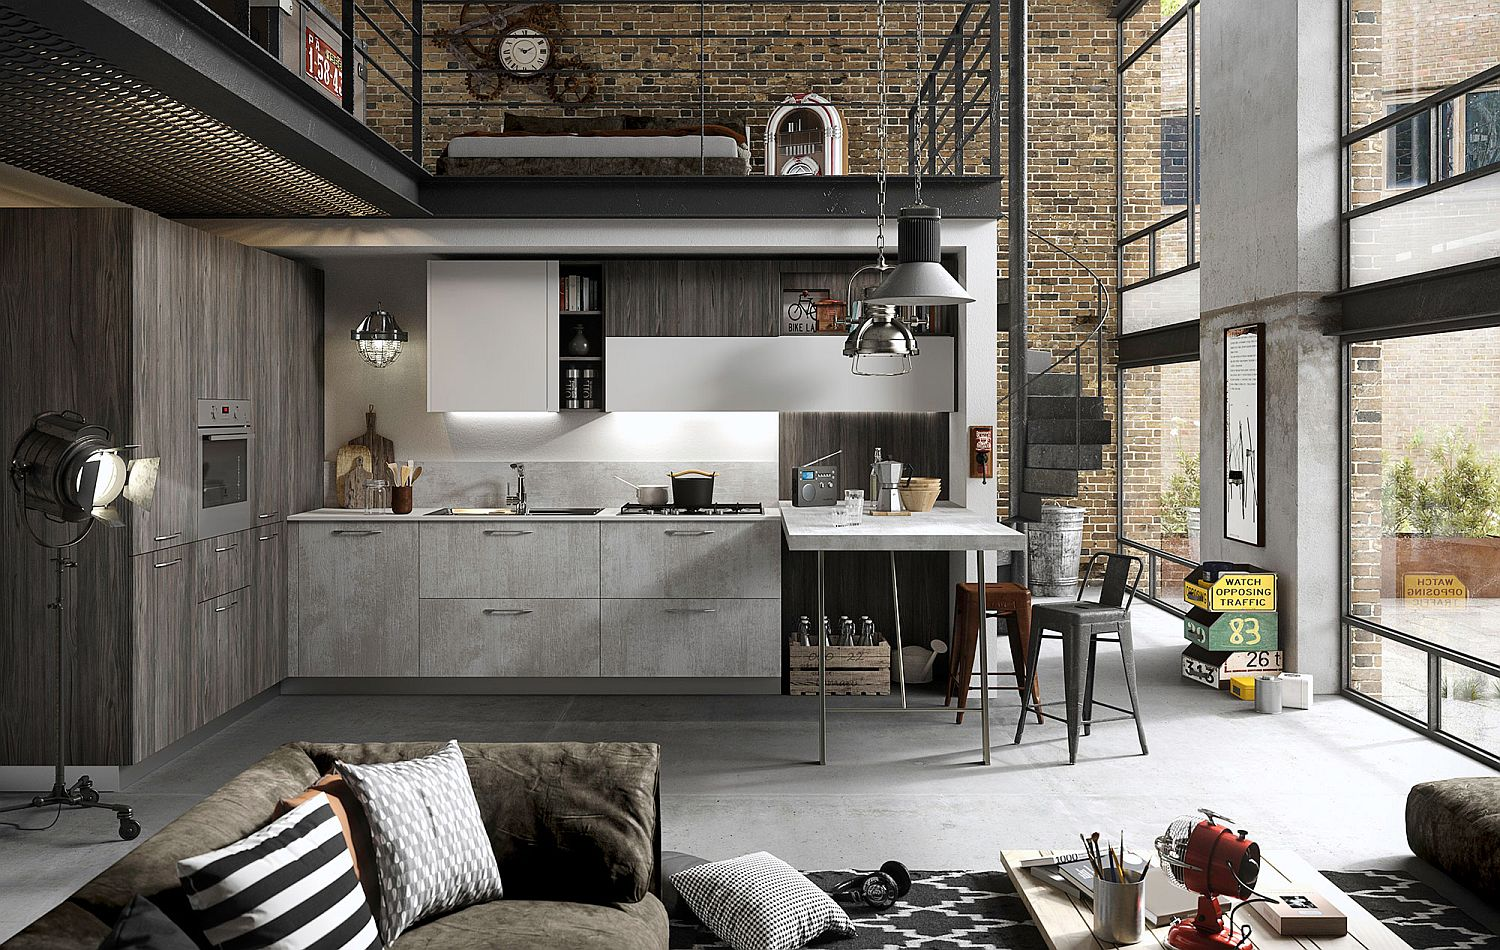 Refined Reliable and Edgy FUN Adaptable Kitchen by Snaidero